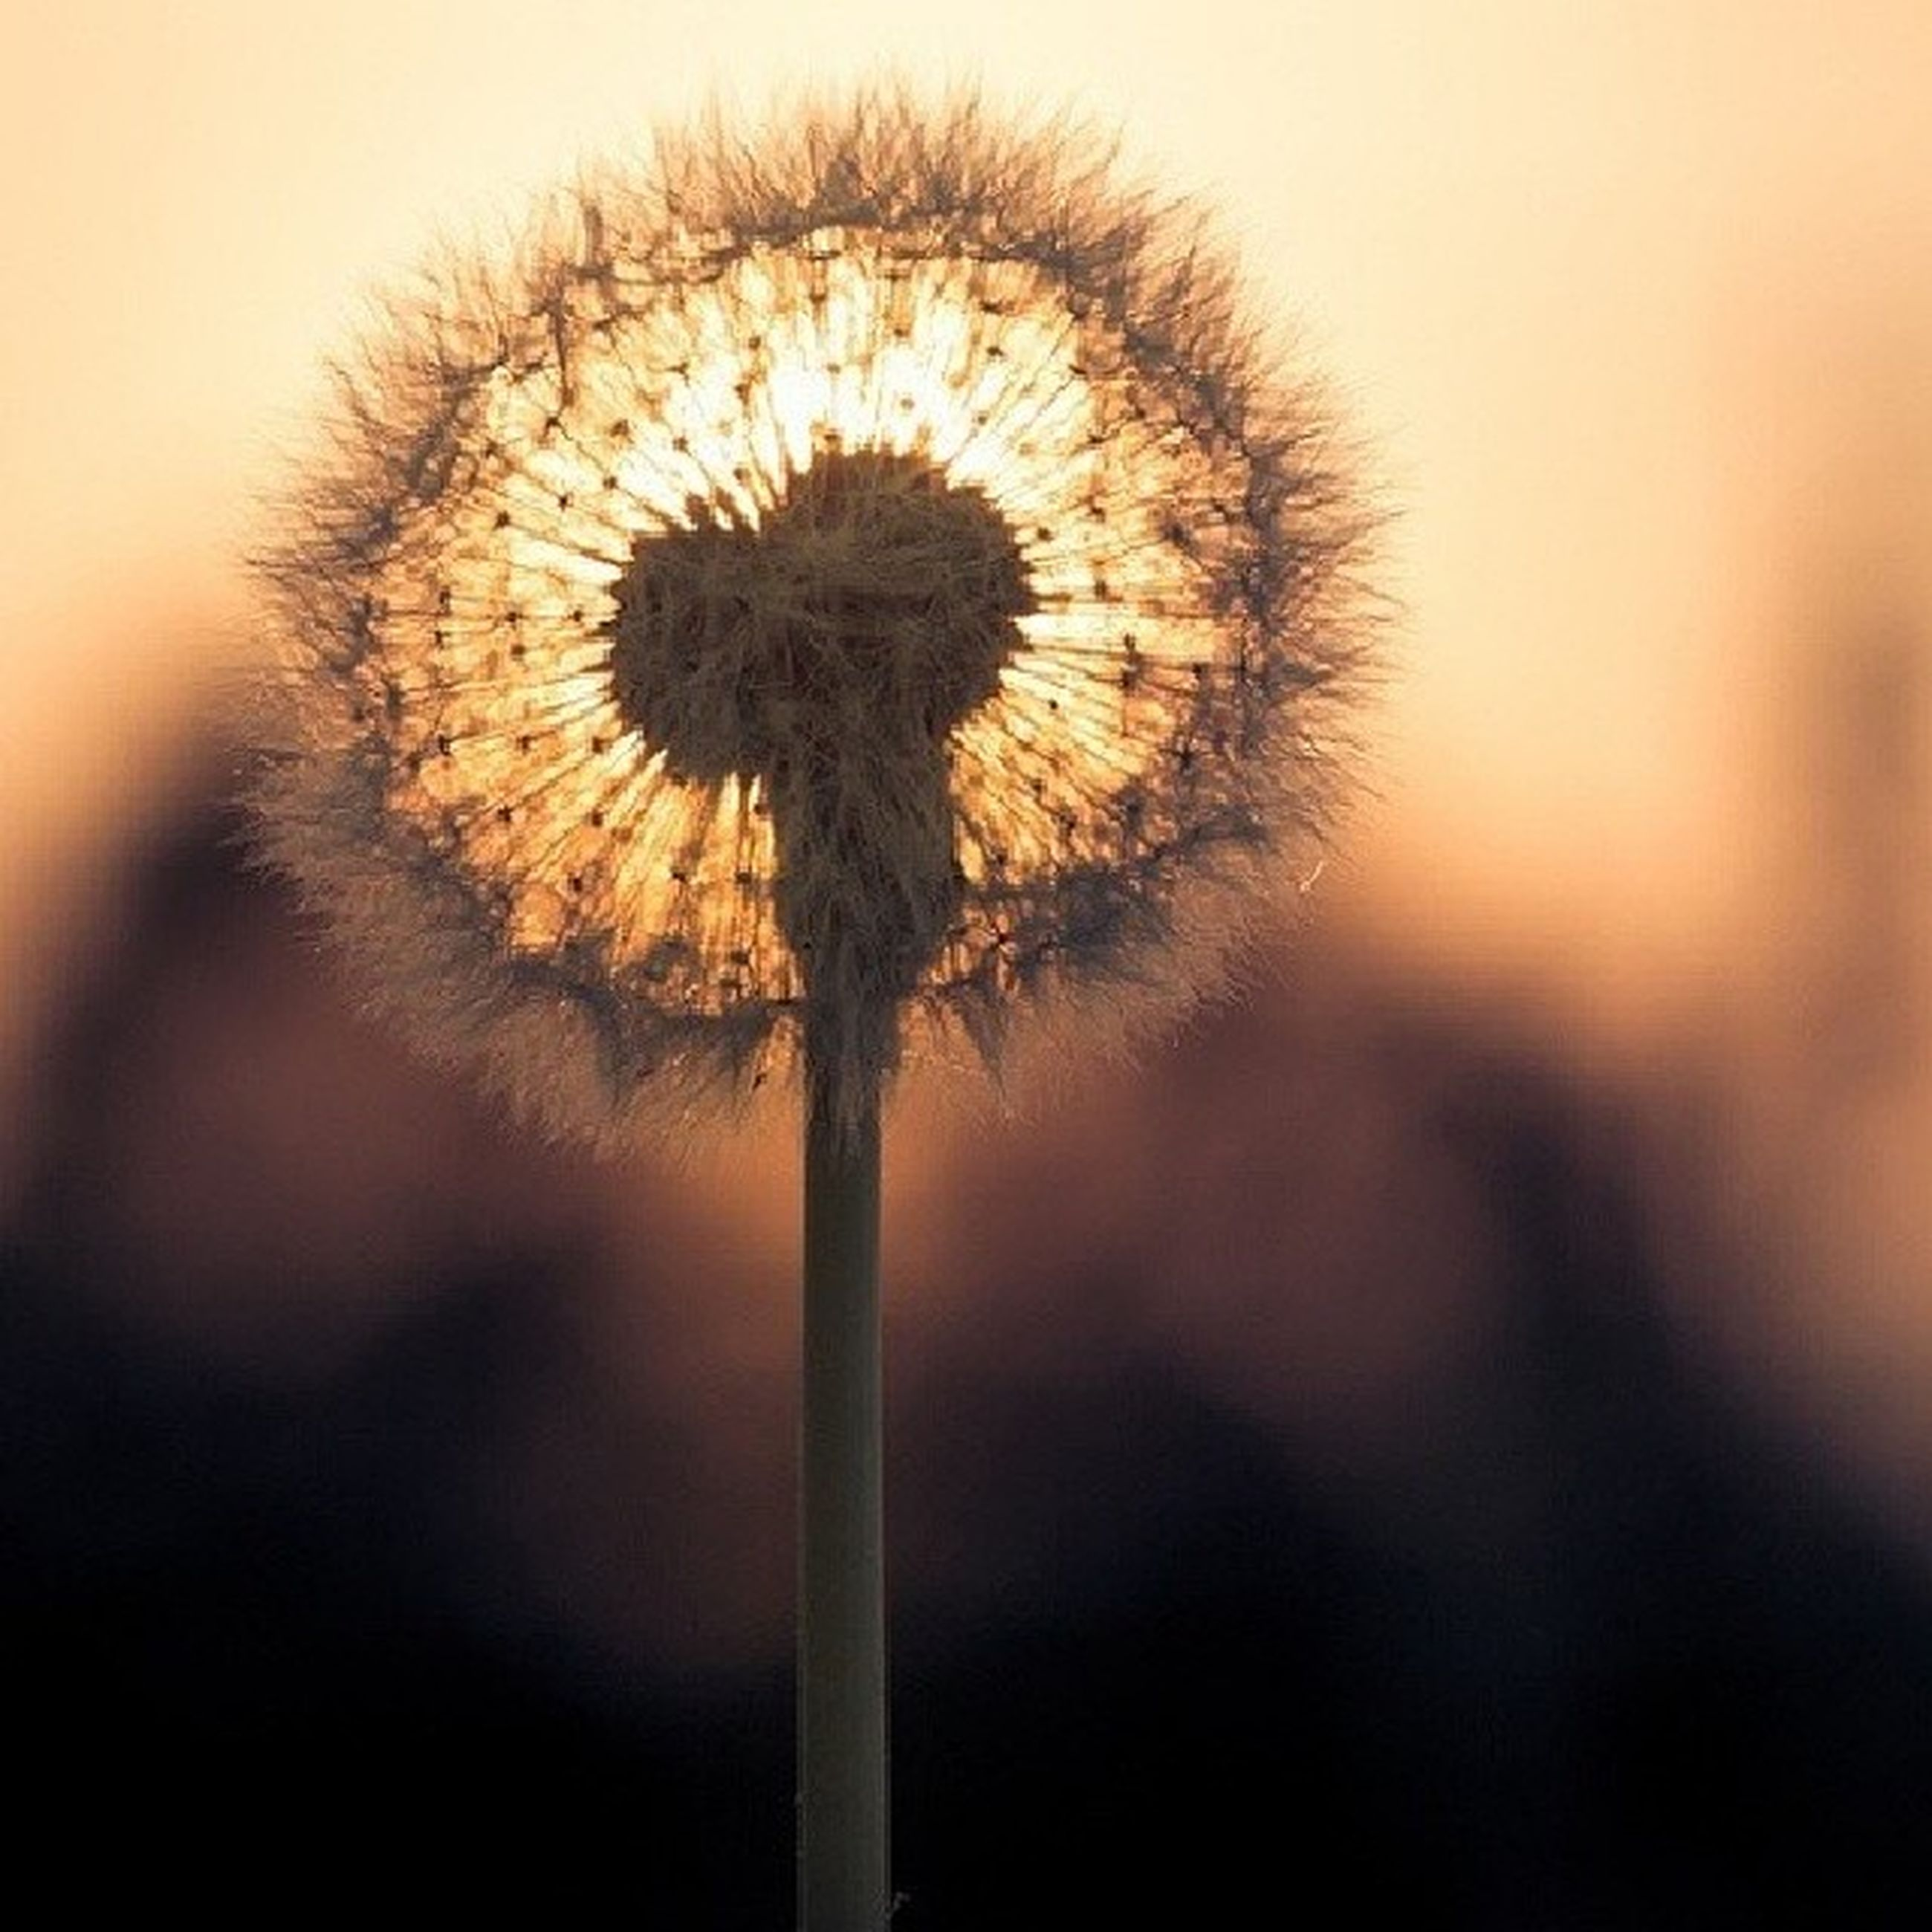 dandelion, flower, fragility, growth, flower head, focus on foreground, close-up, beauty in nature, single flower, freshness, nature, stem, softness, plant, outdoors, no people, uncultivated, selective focus, field, dandelion seed